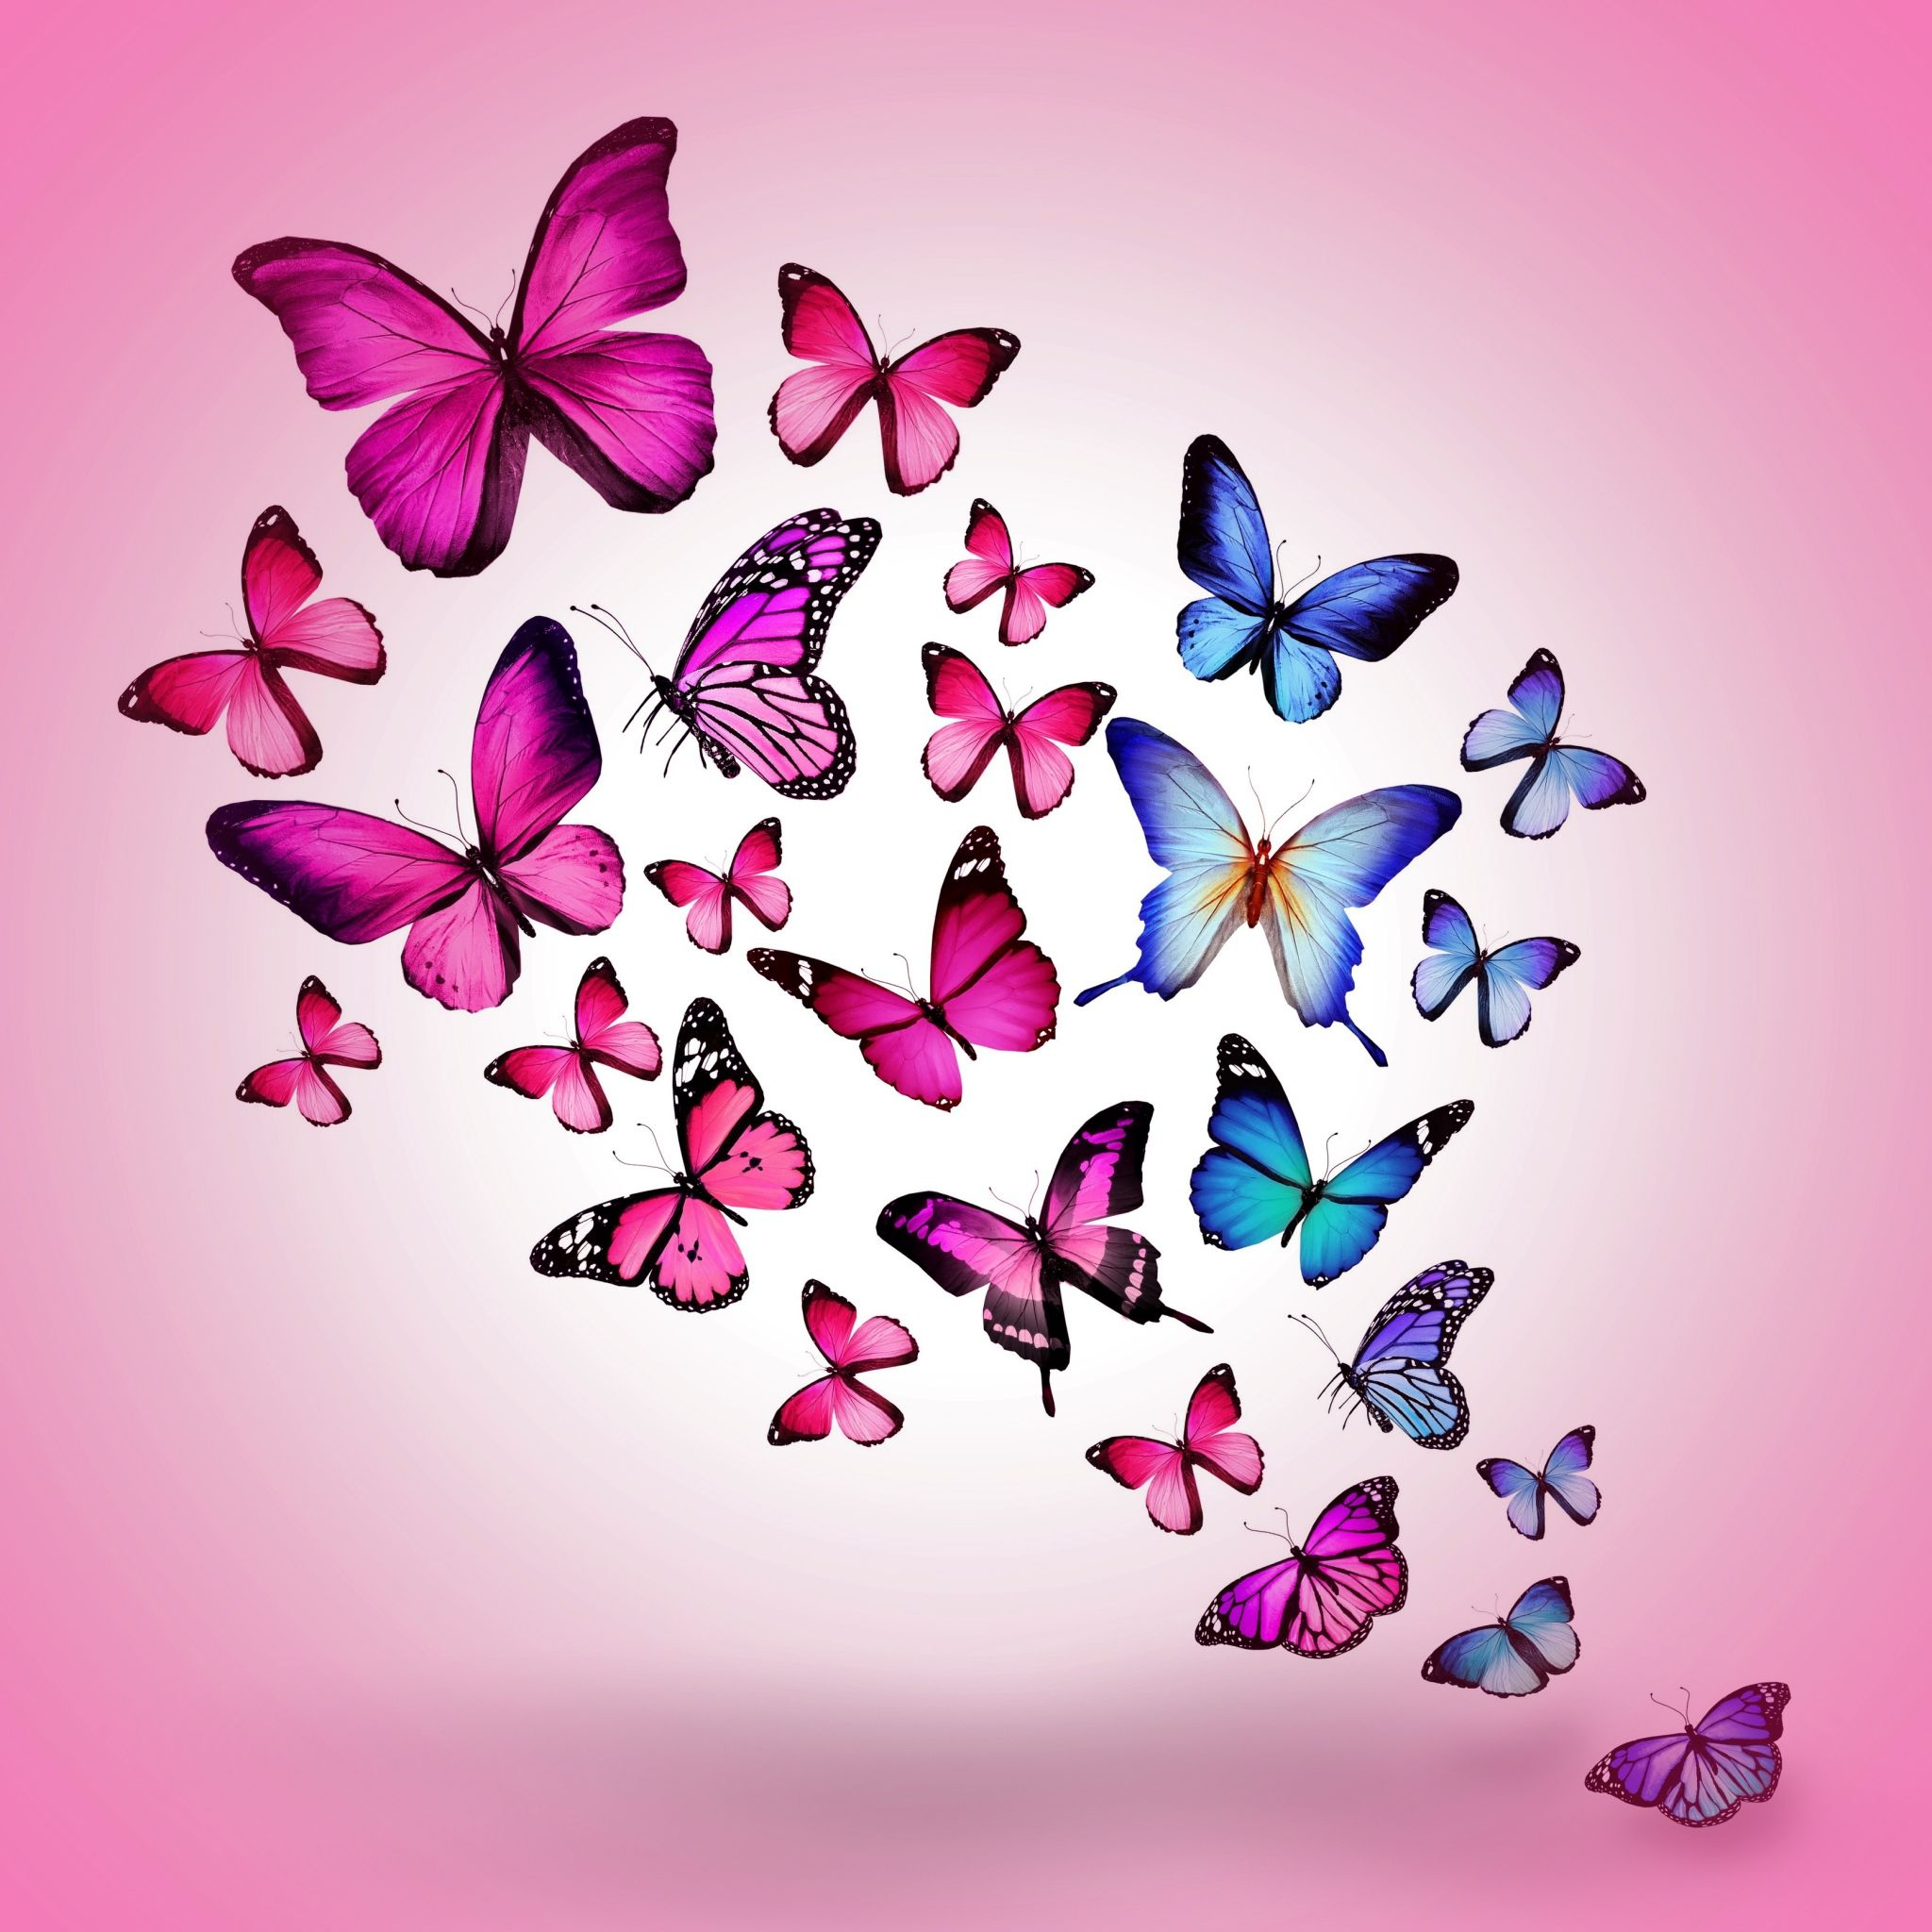 2048x2048 wallpaper butterfly drawing flying colorful background pink